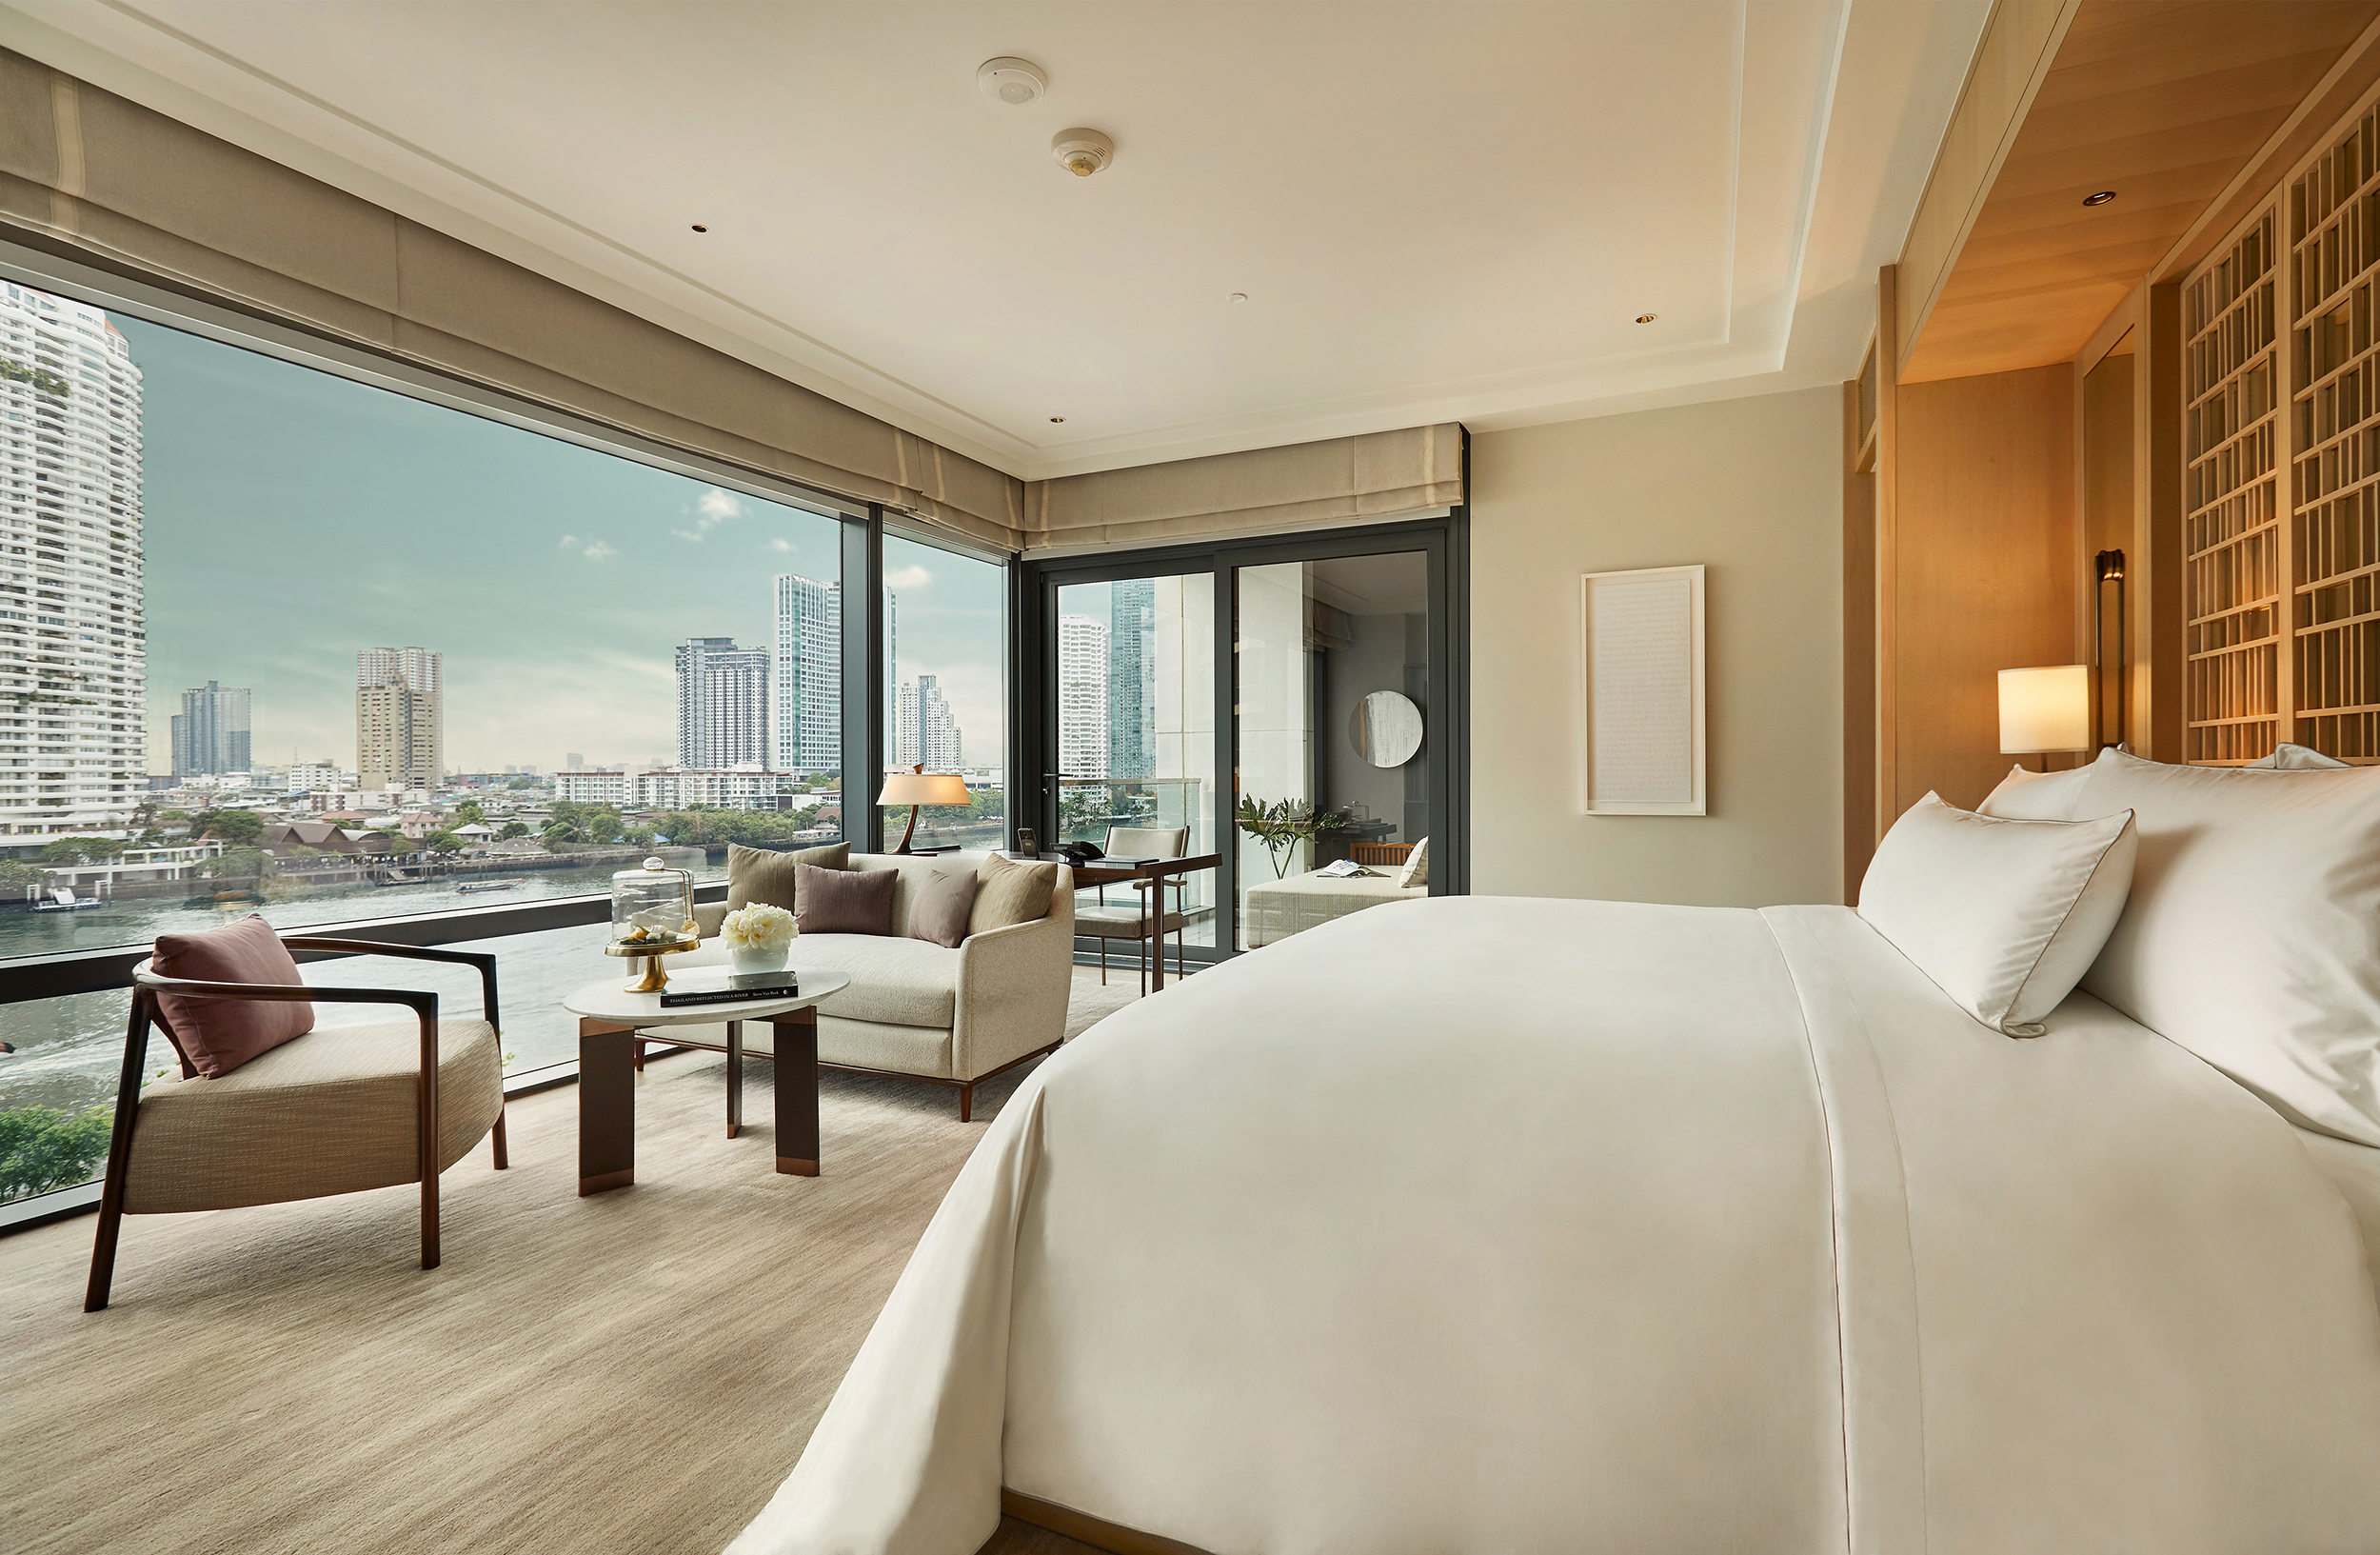 These are luxury and premium hotels that are set to open their doors in Bangkok in 2020